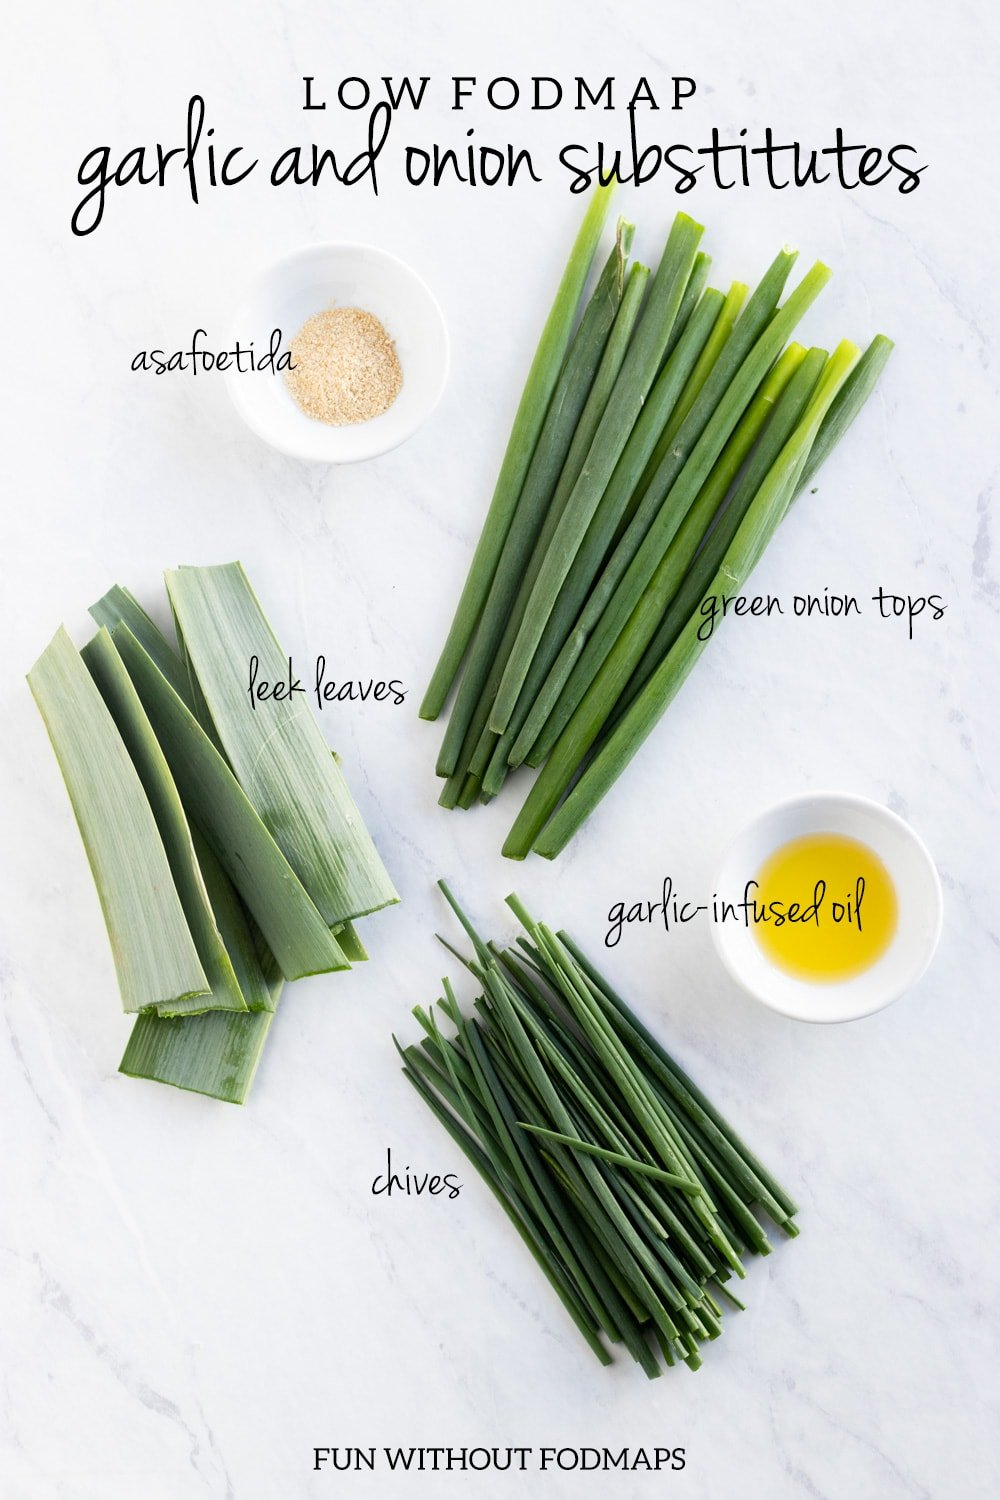 5 low FODMAP garlic and onion substitutes (asafoetida, green onion tops, leek leaves, garlic-infused oil, and chives)